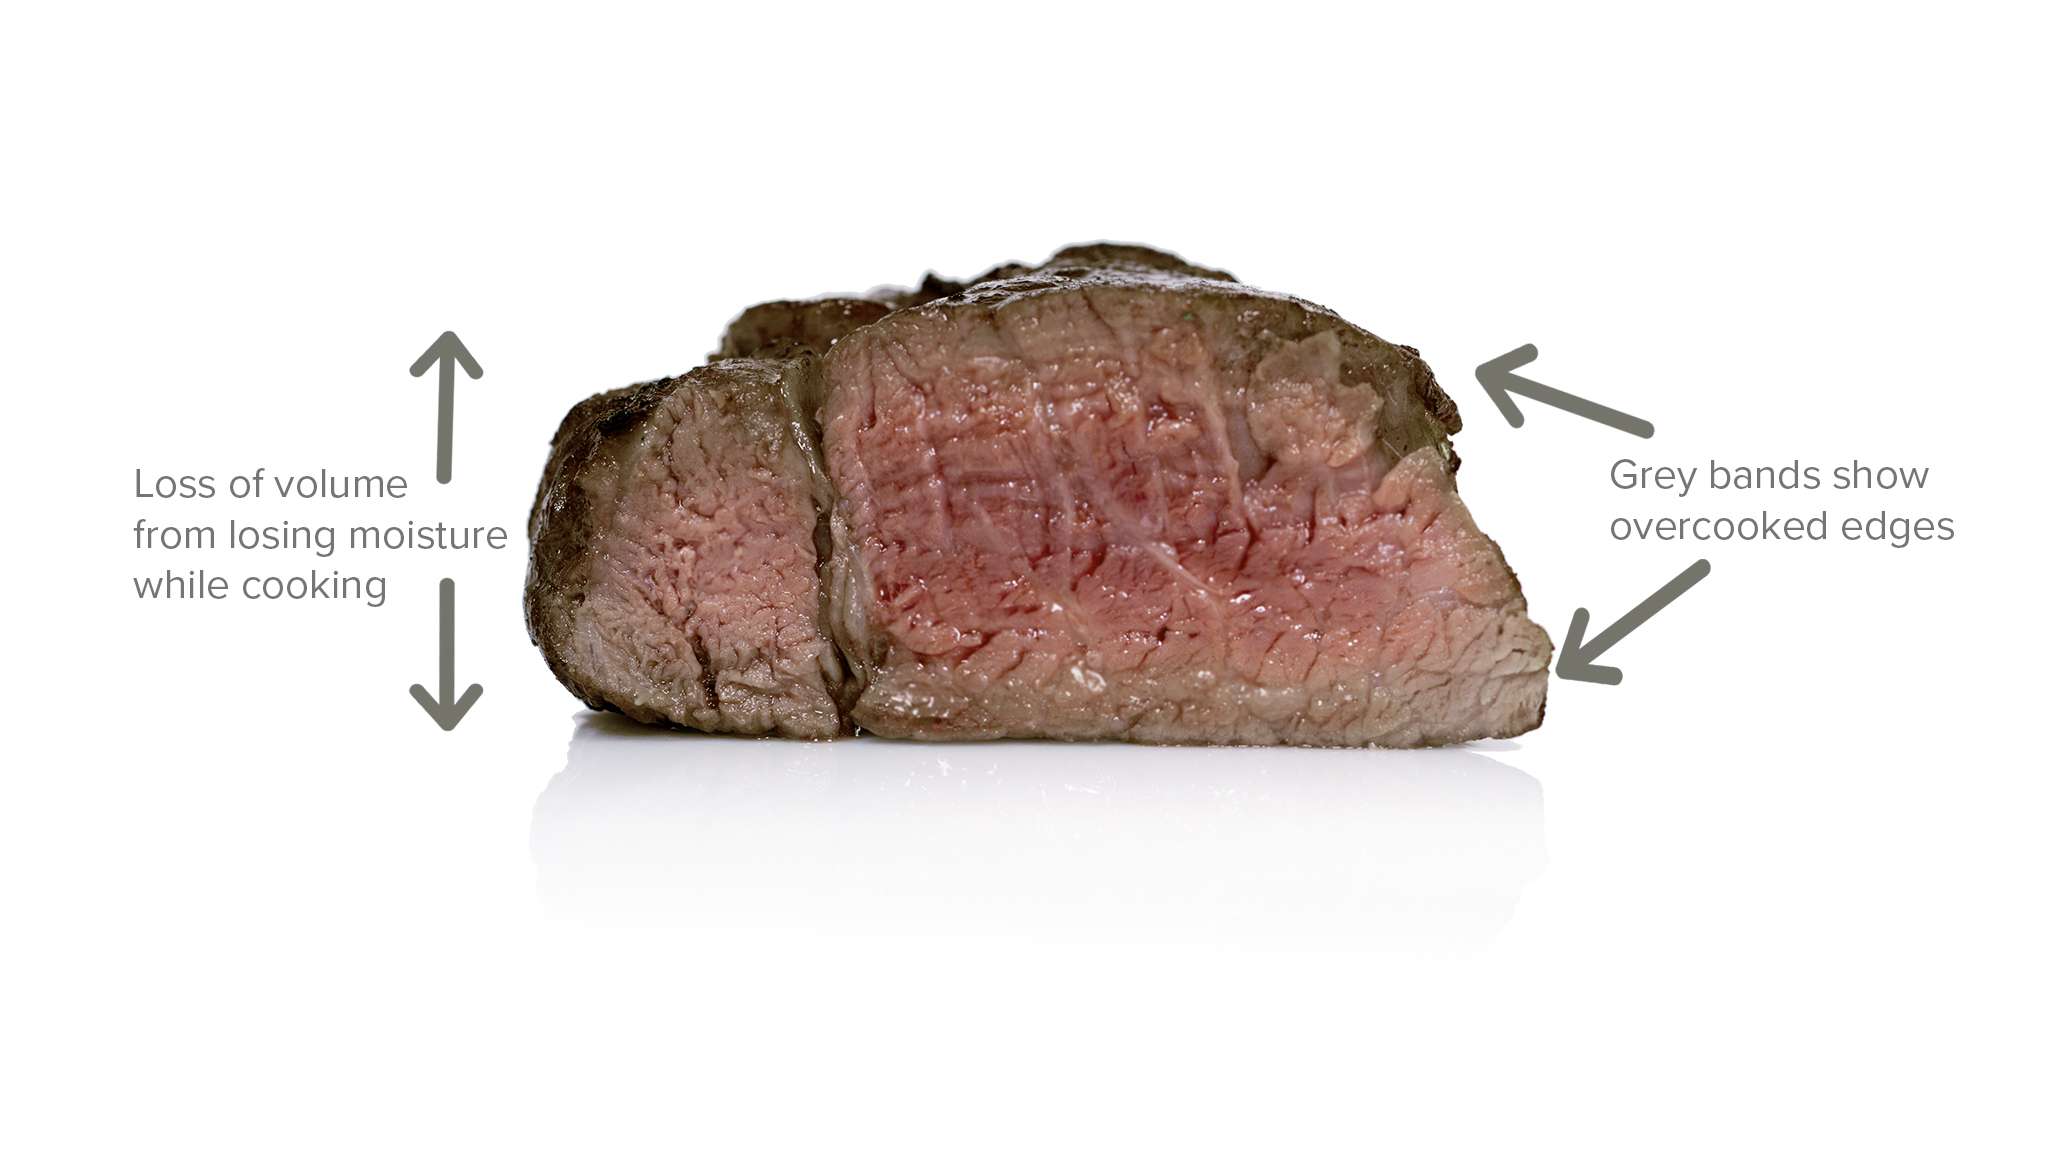 Overcooked_Steak.jpg